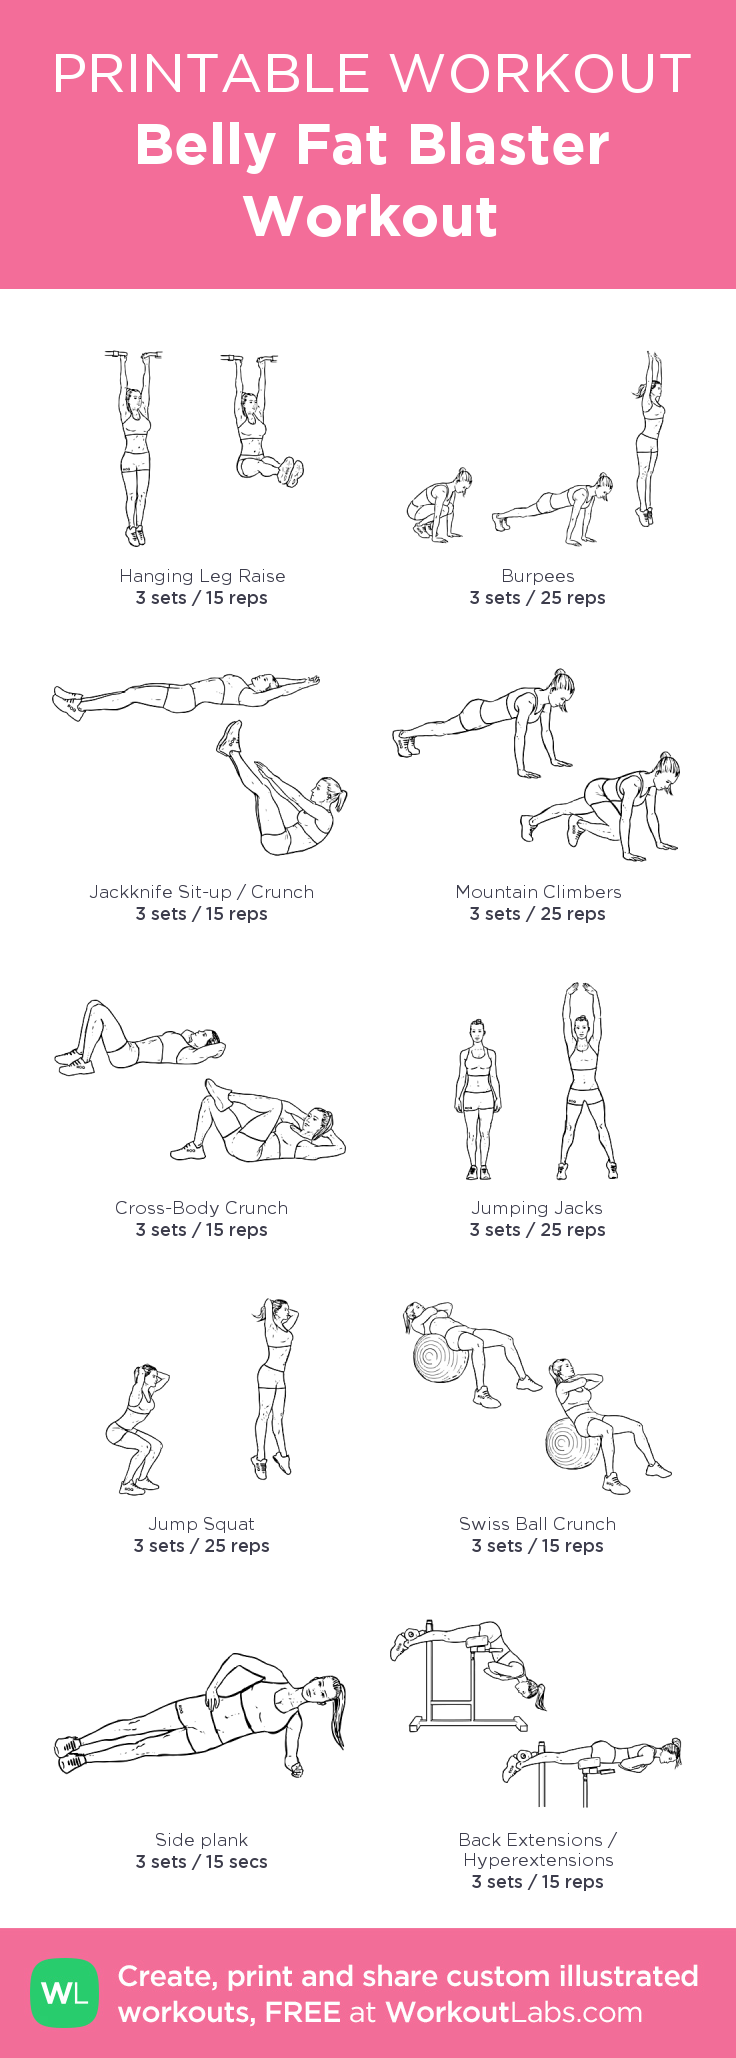 Belly Fat Blaster Workout:my custom printable workout by @WorkoutLabs #workoutlabs #customworkout @Staci Stack To Be